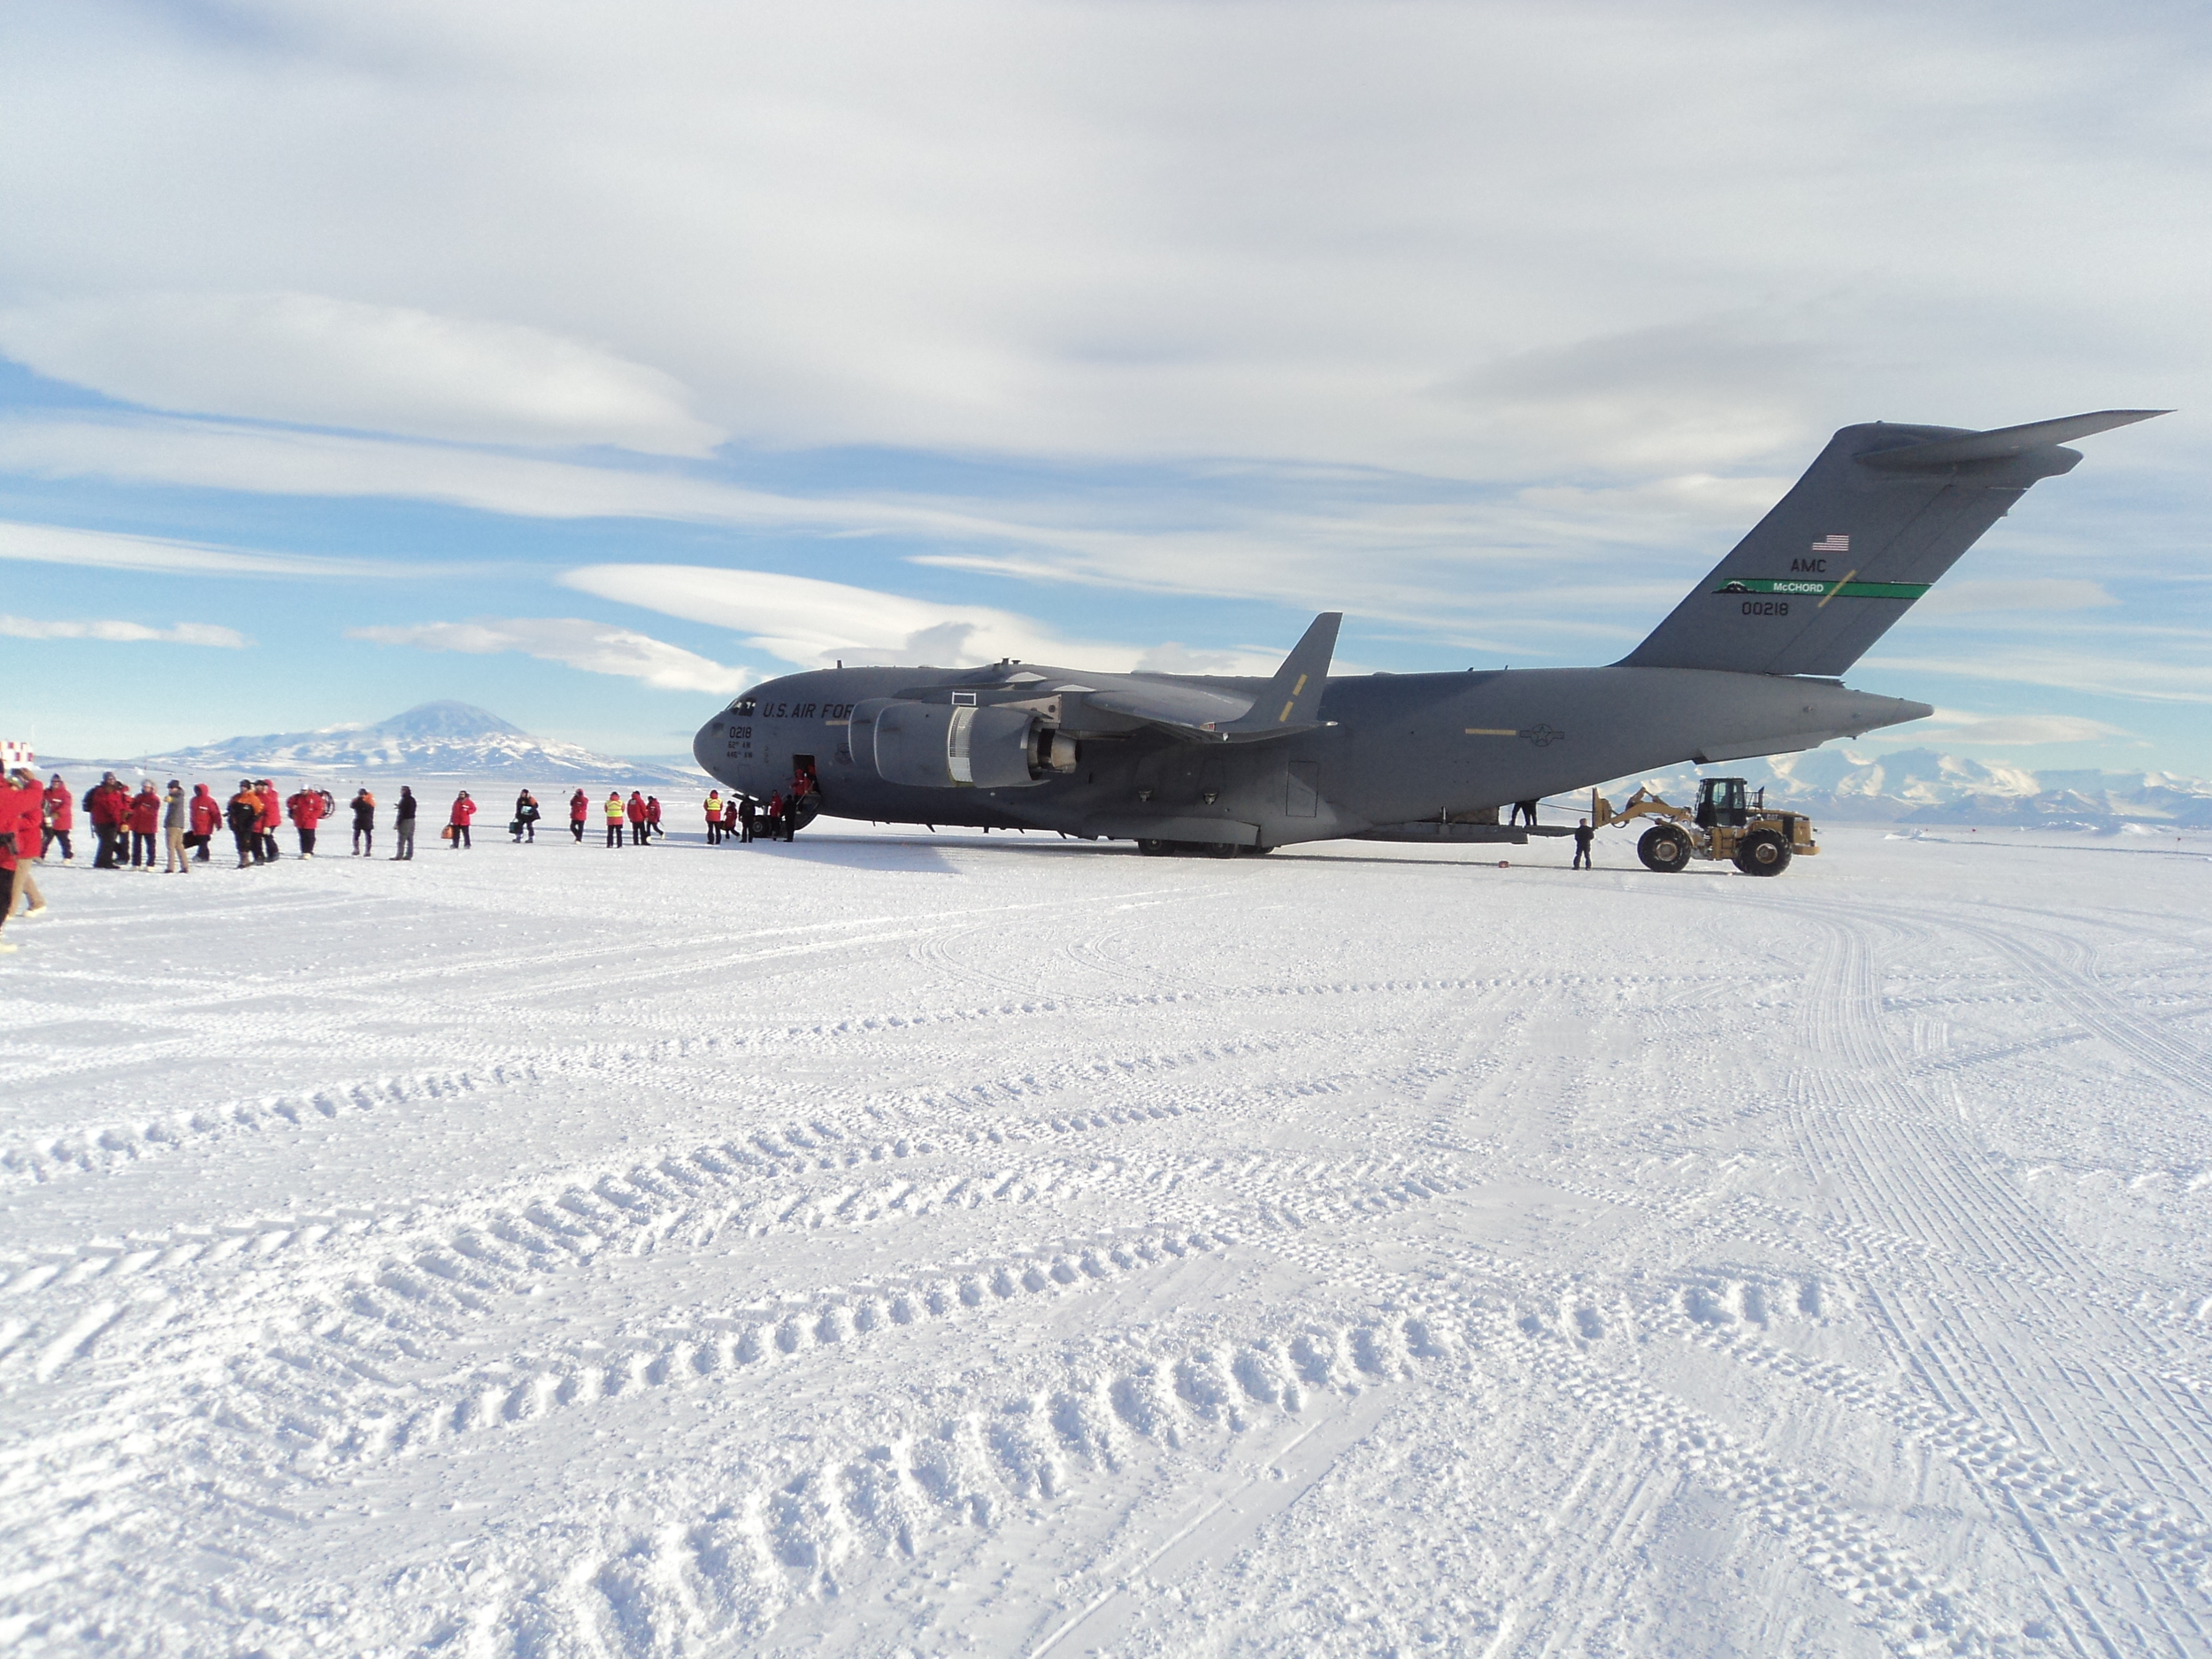 Our sweet ride...and yes, we land on ice!